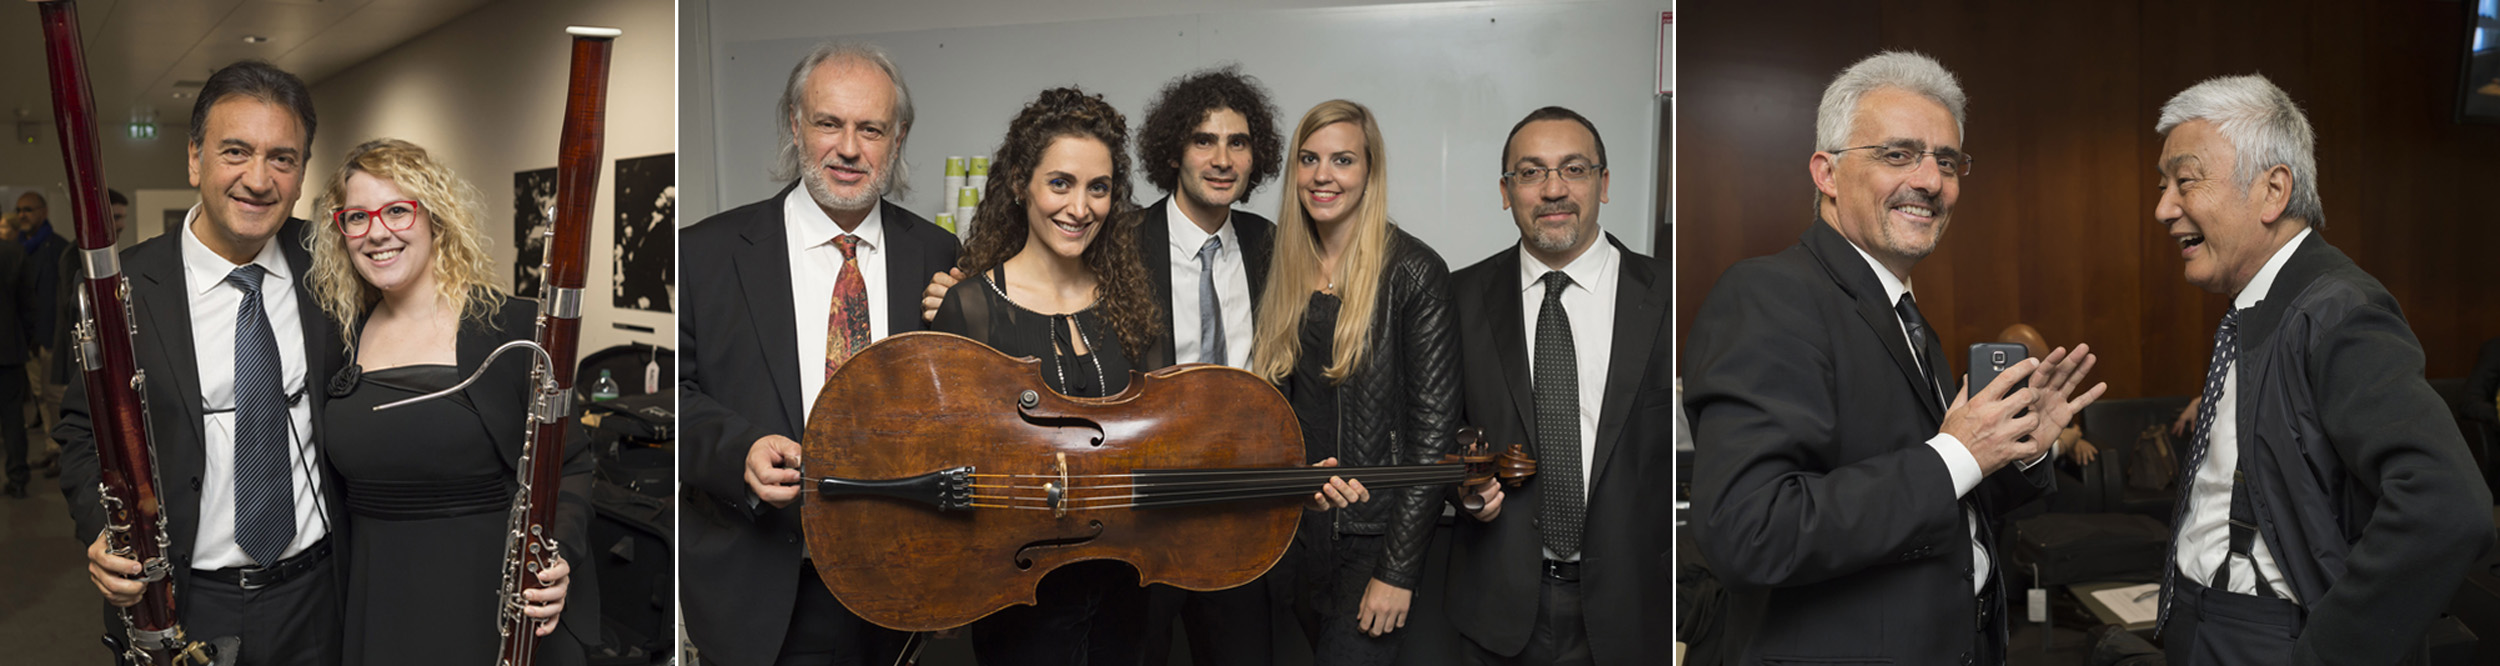 Bassoonists, five cellists, and two violists who performed in the Lucerne concert of 2017